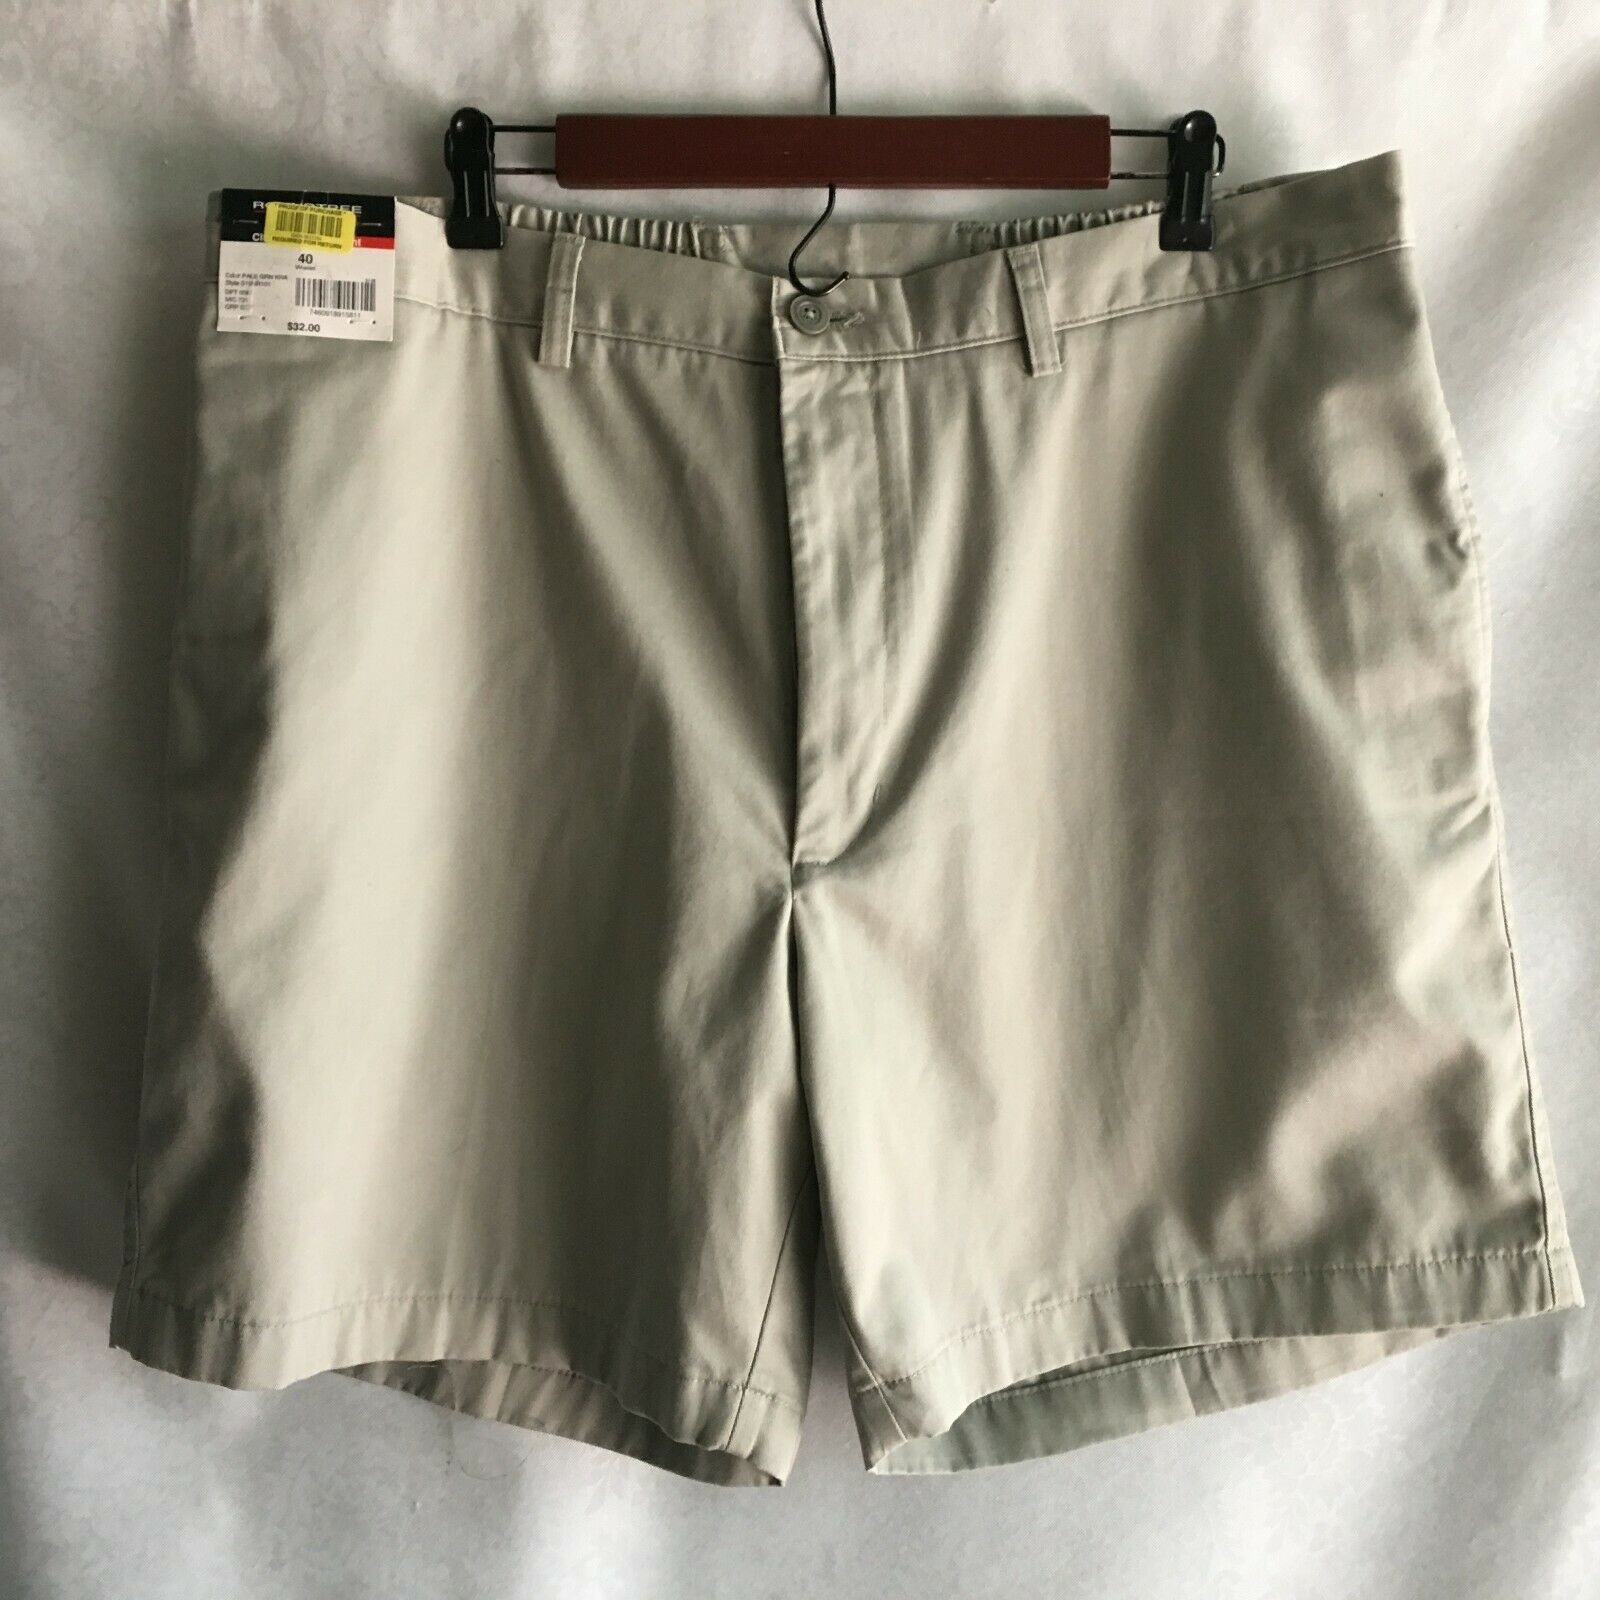 Roundtree & Yorke Easy Care Men's  Shorts Size 40 100% Cotton Pale Green Khaki